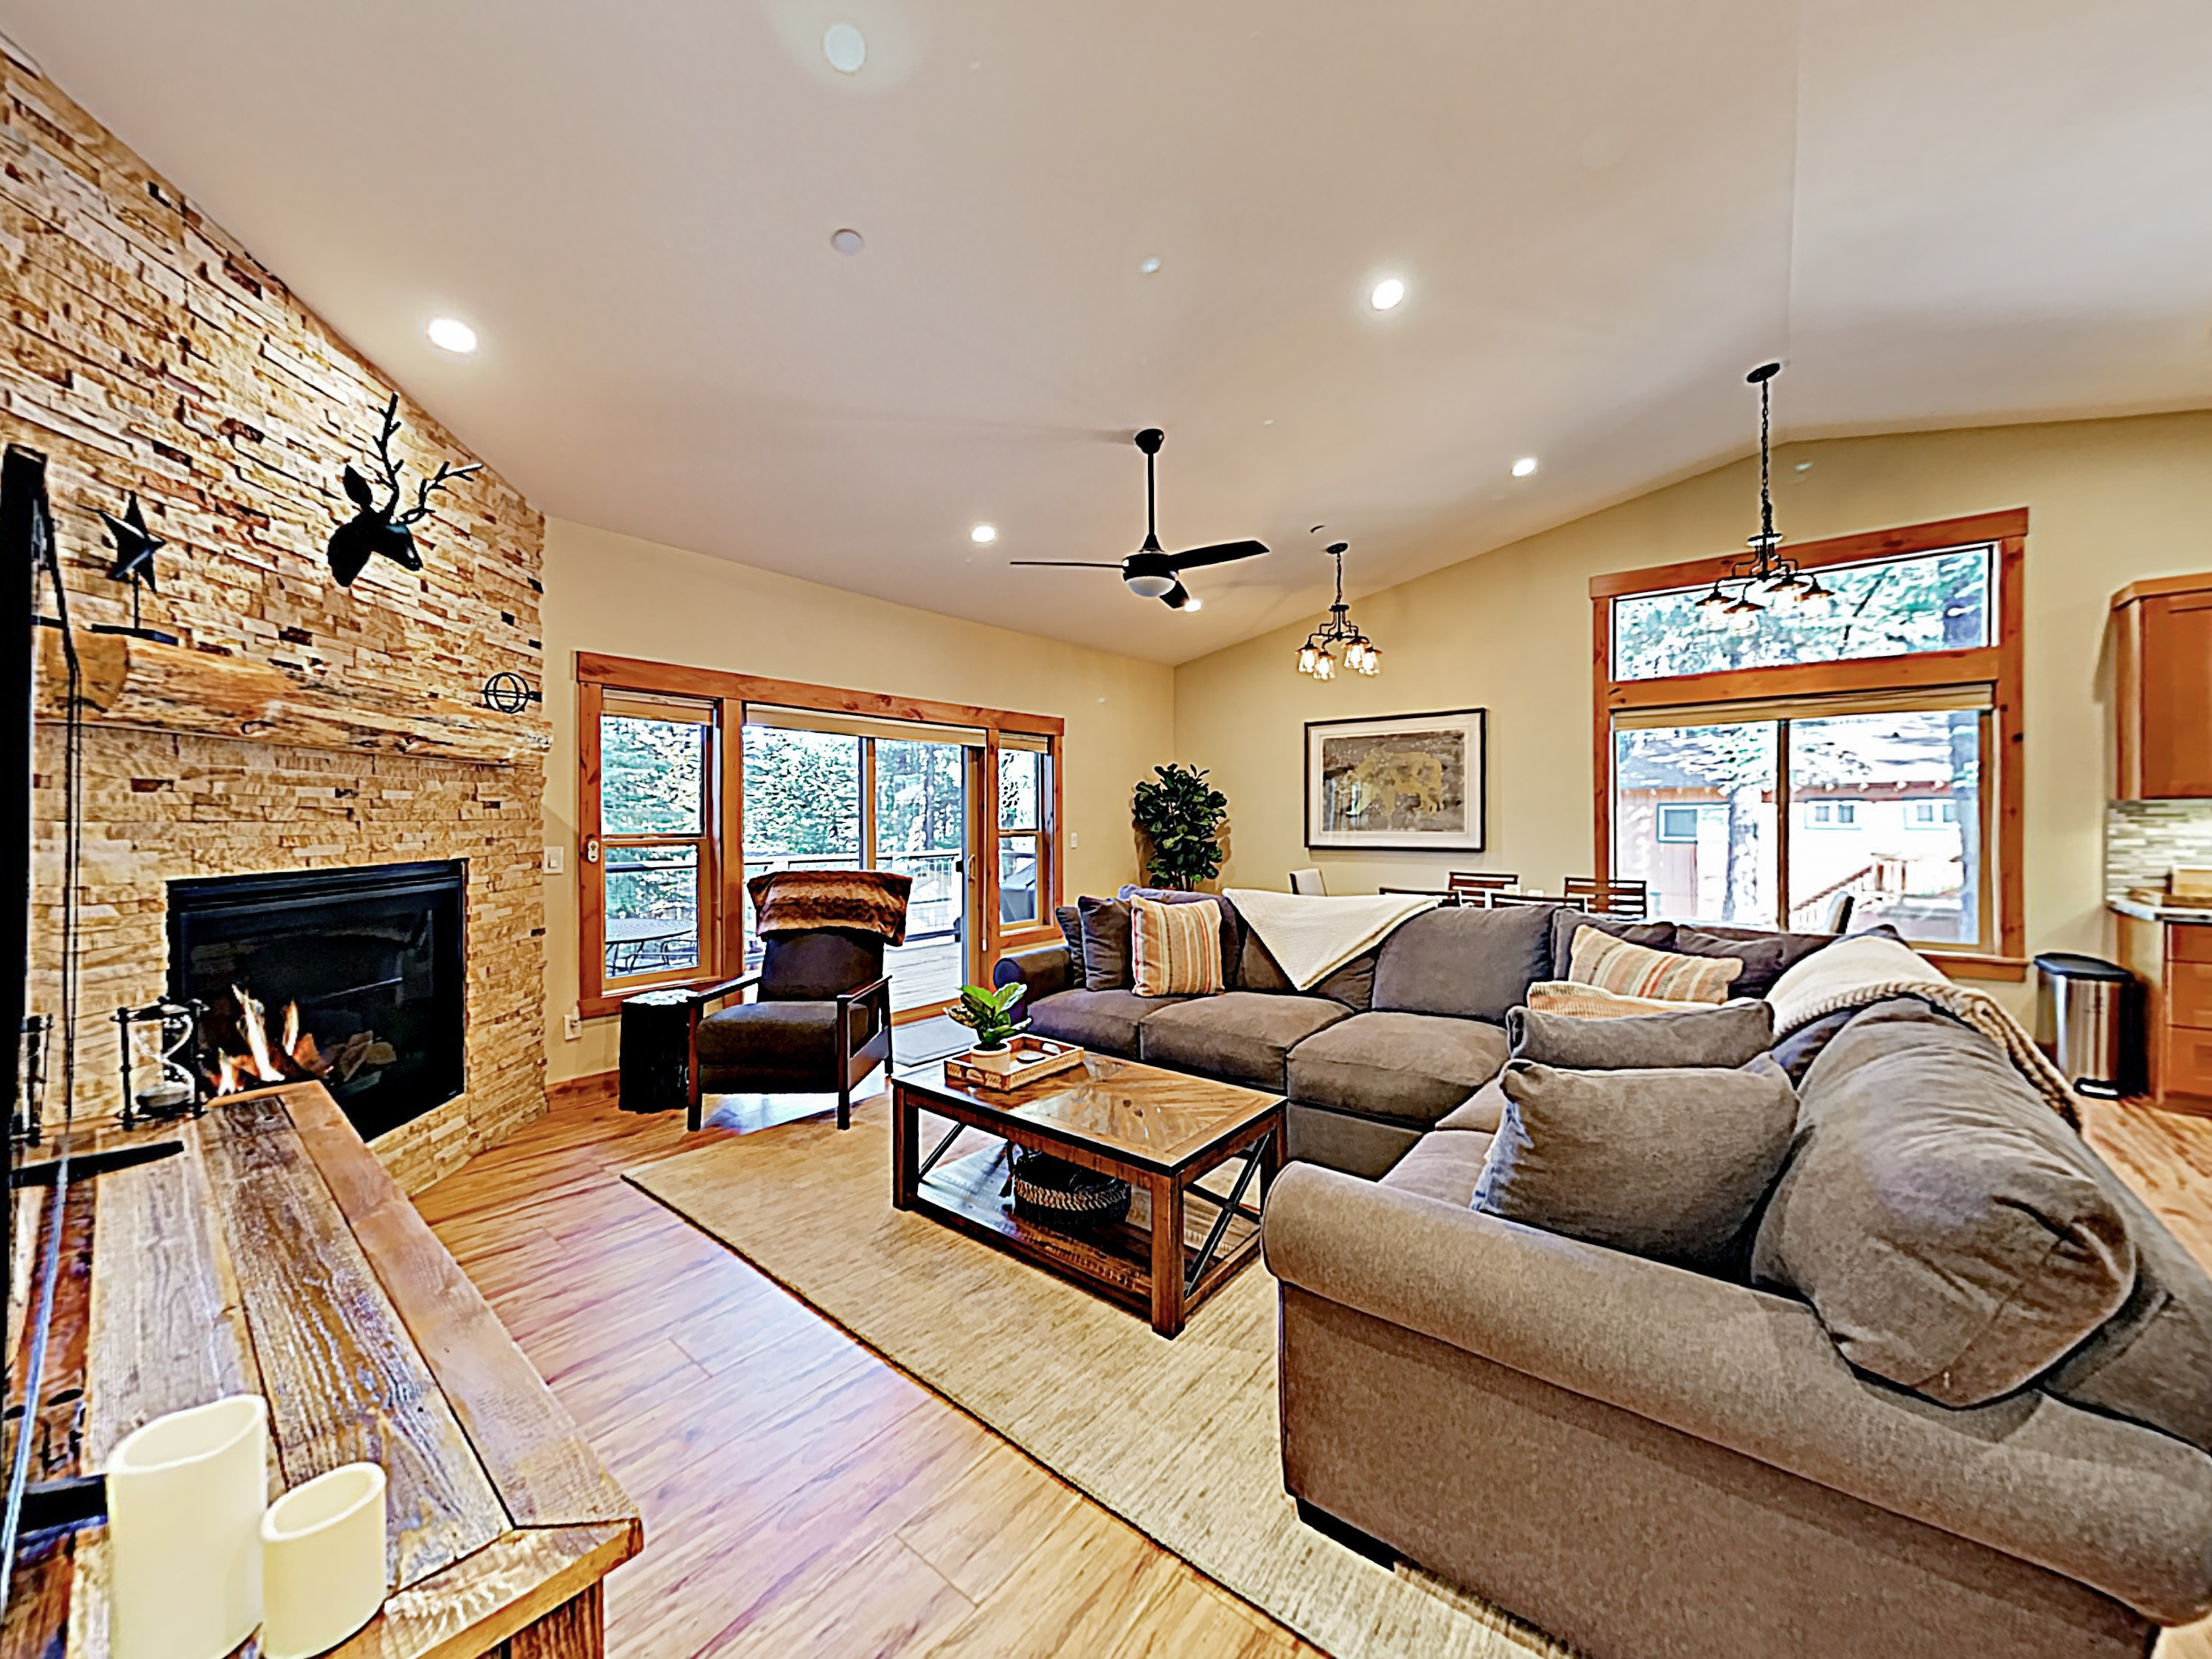 South Lake Tahoe CA Vacation Rental Welcome! This home